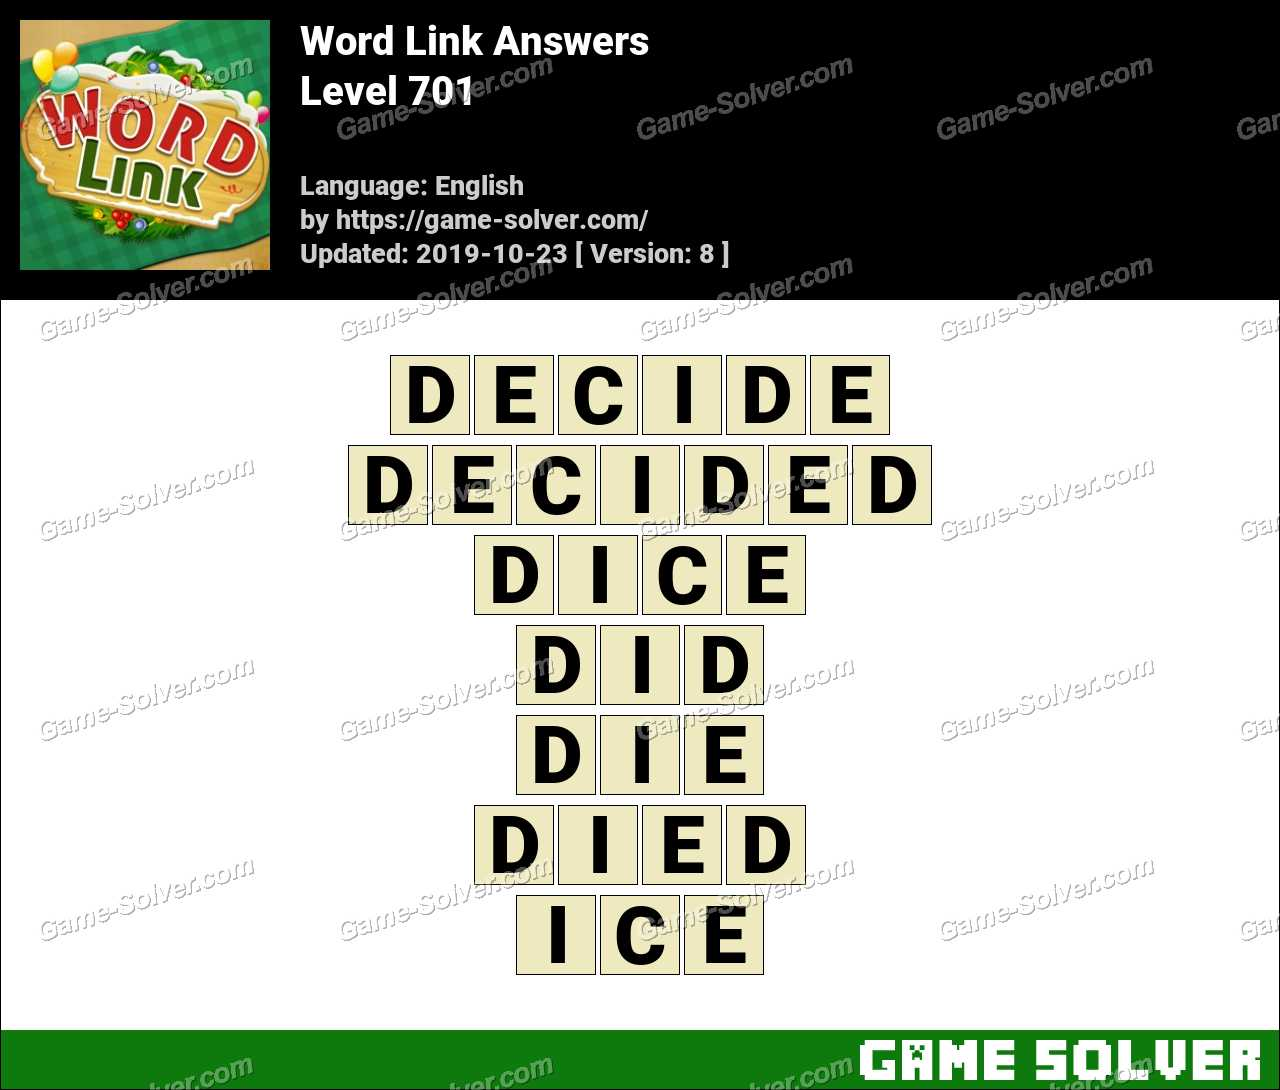 Word Link Level 701 Answers